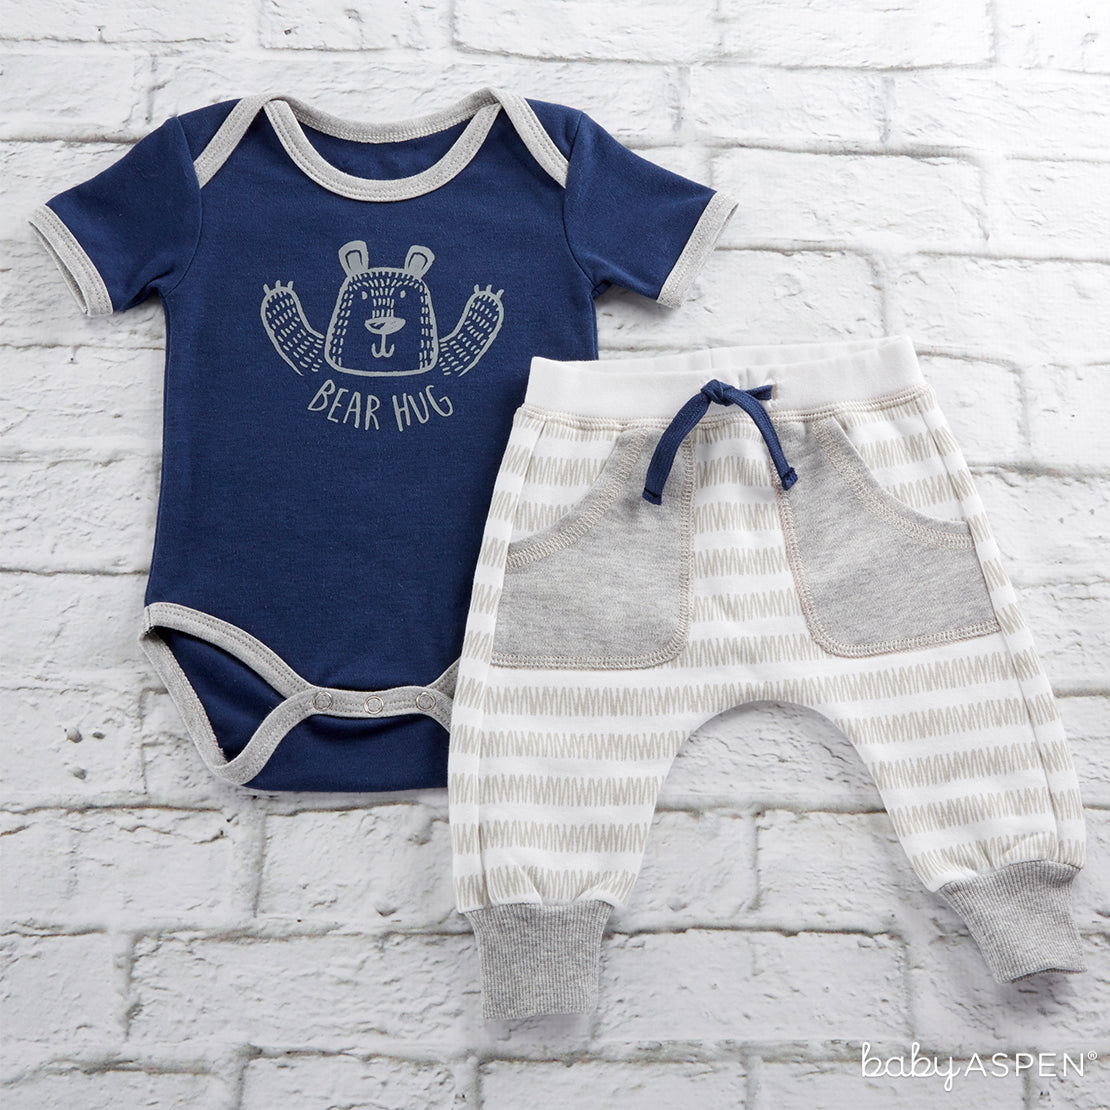 Trendy Baby Bear Hug 2 Piece Outfit | 9 Ideas to Keep Baby Warm This Winter | Baby Aspen